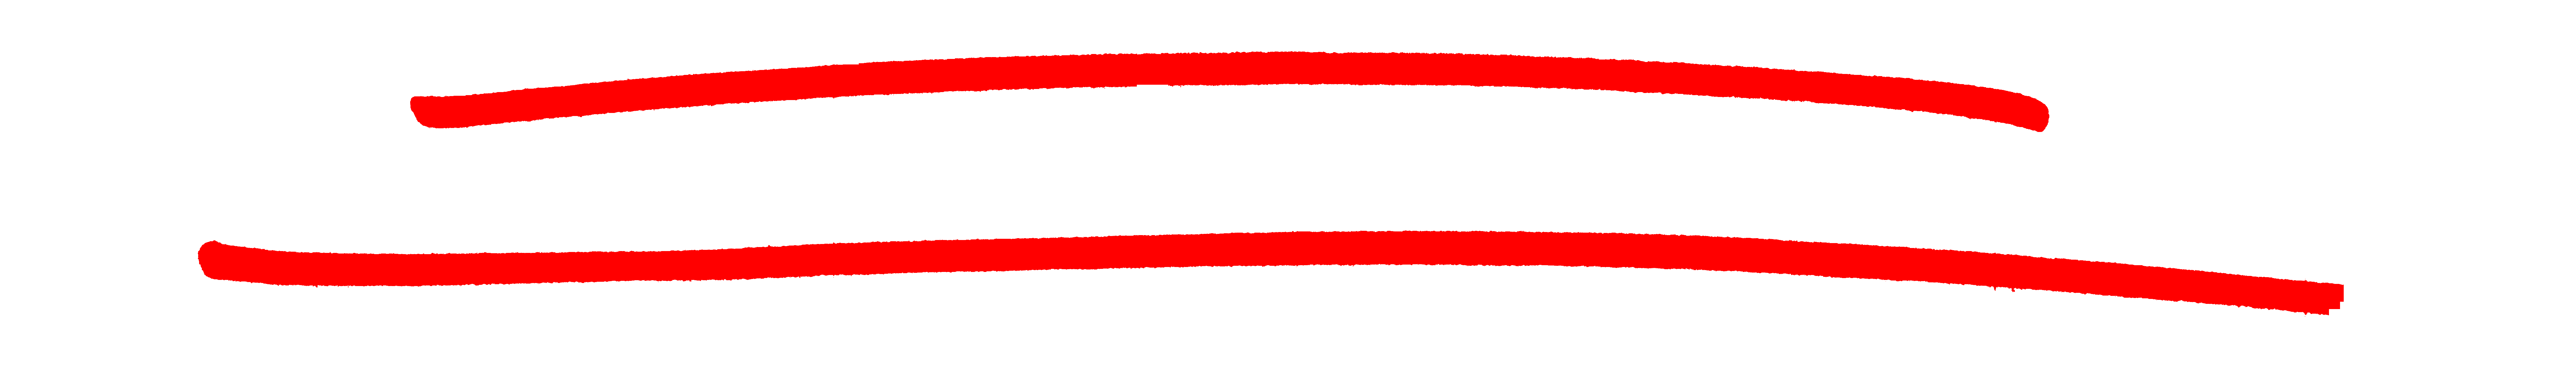 Red underline png. Double lines central park